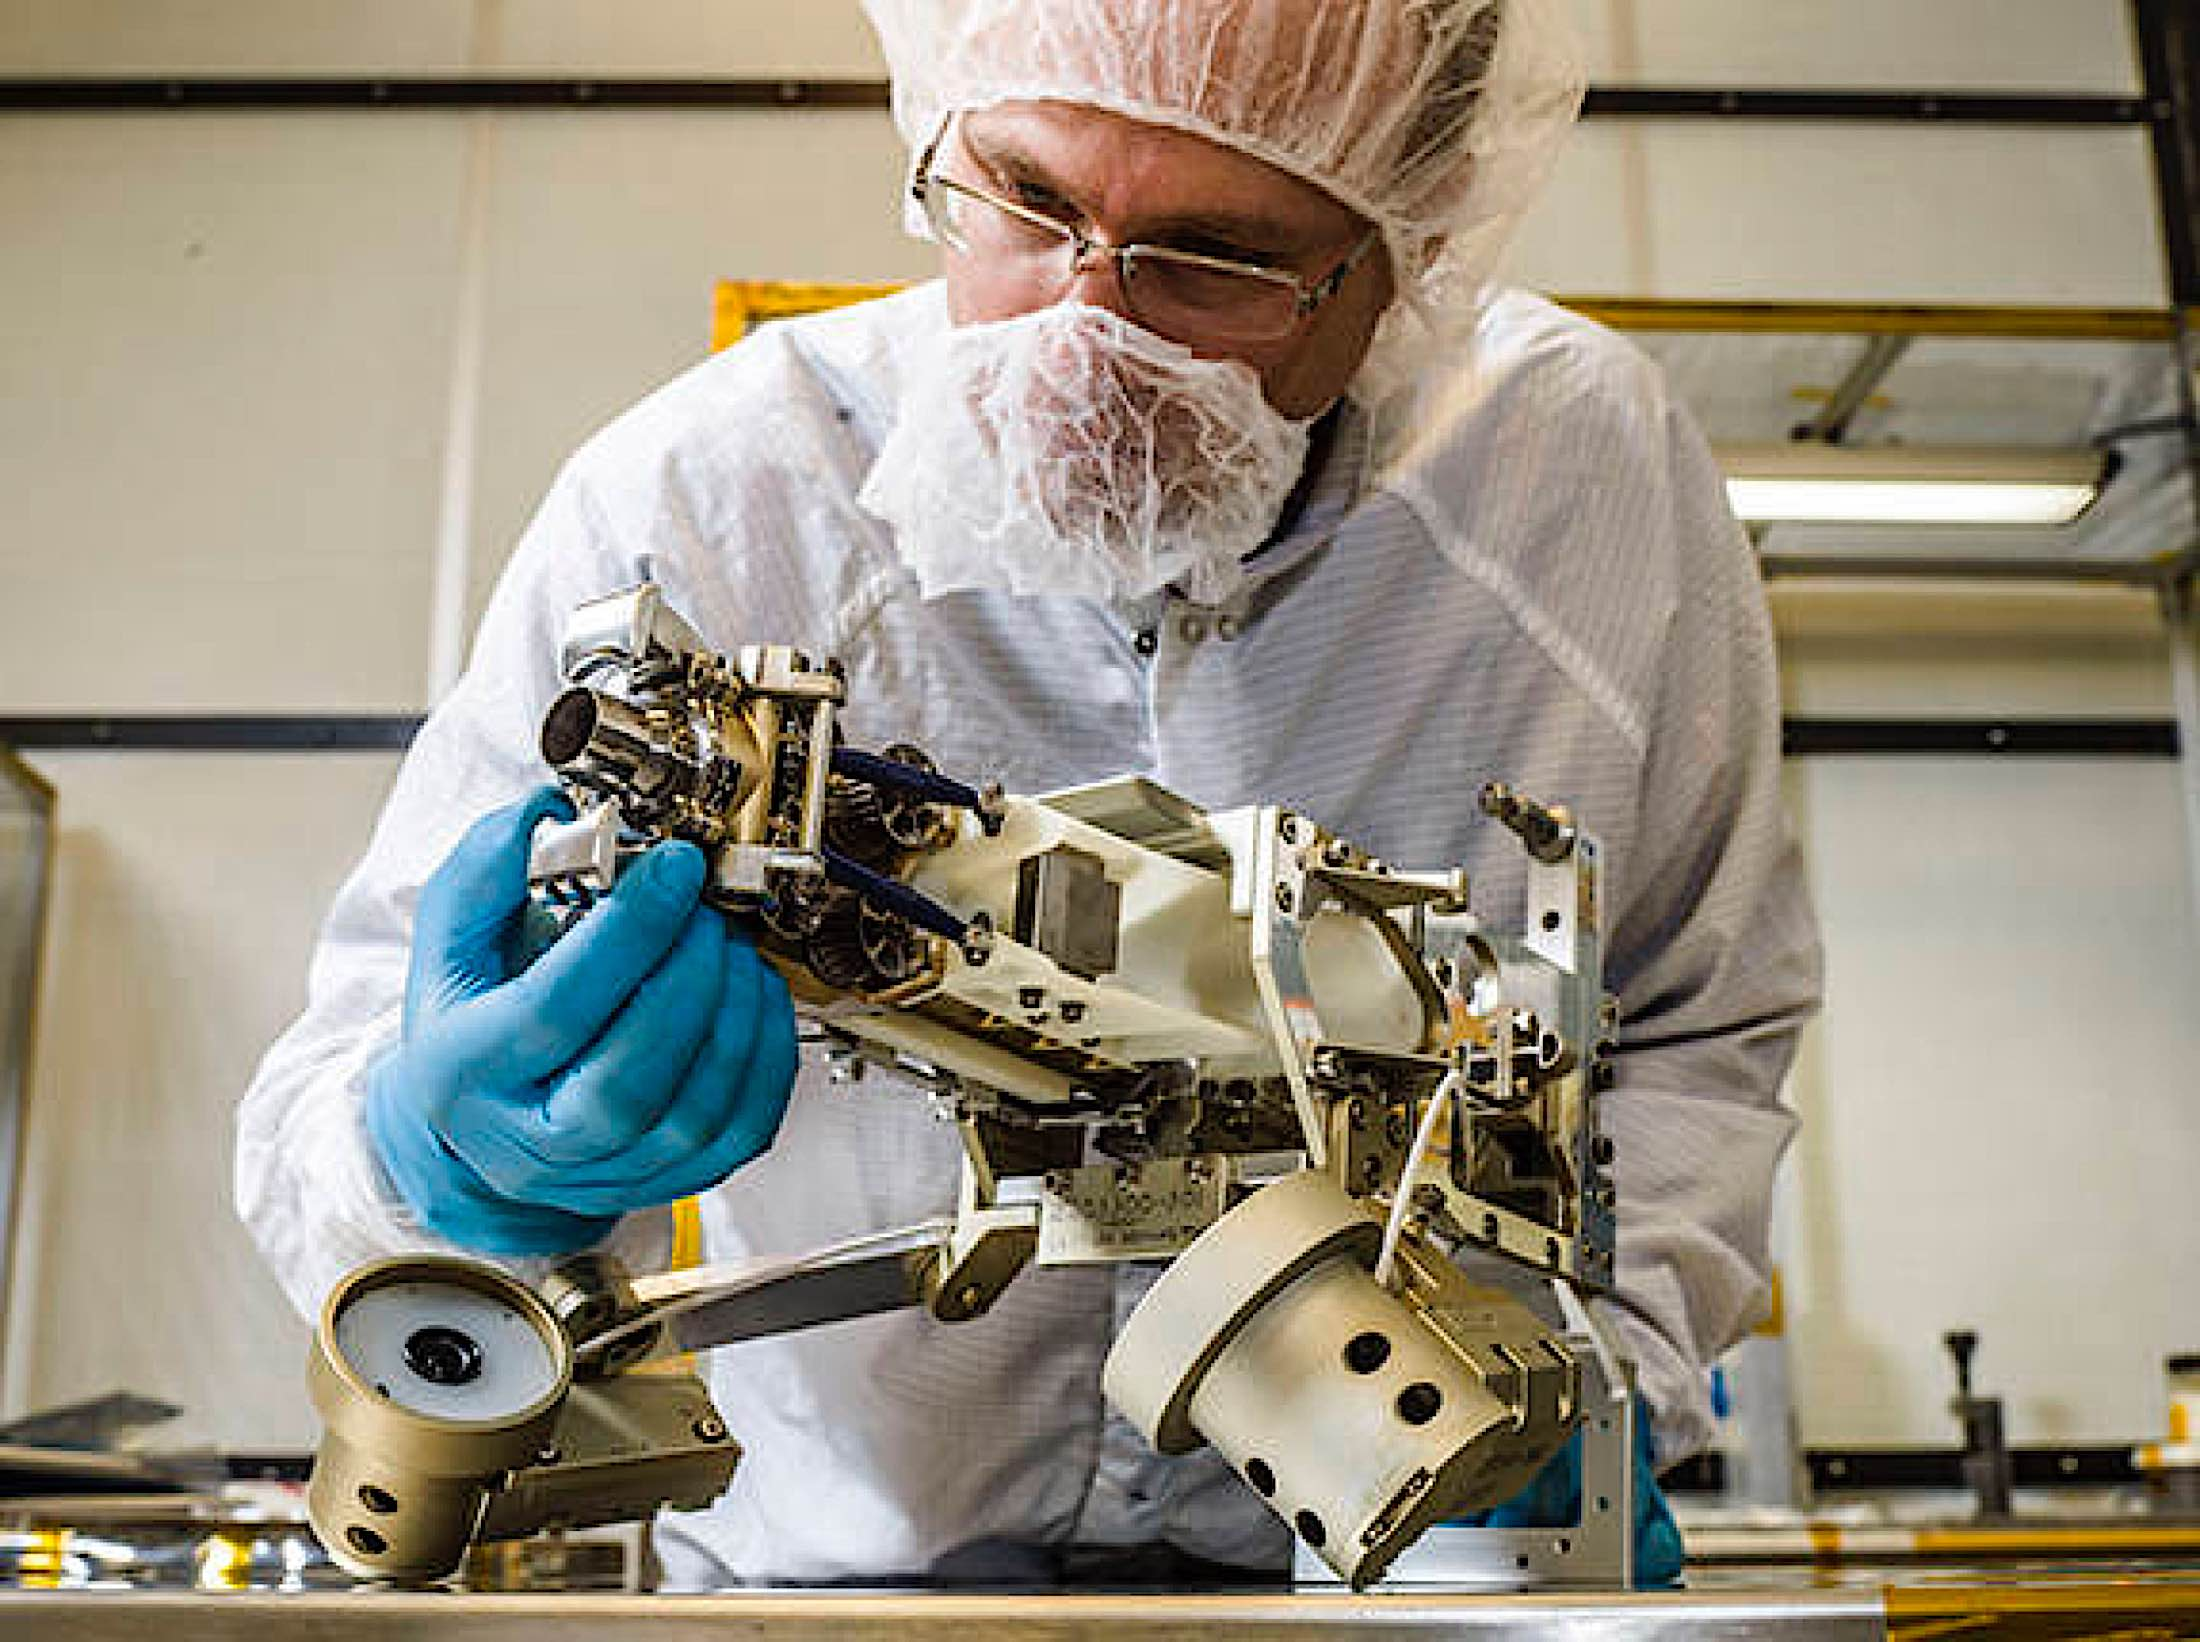 Engineered Design Insider Cryogen Servicing Tool before launch NASAOil Gas Automotive Aerospace Industry Magazine